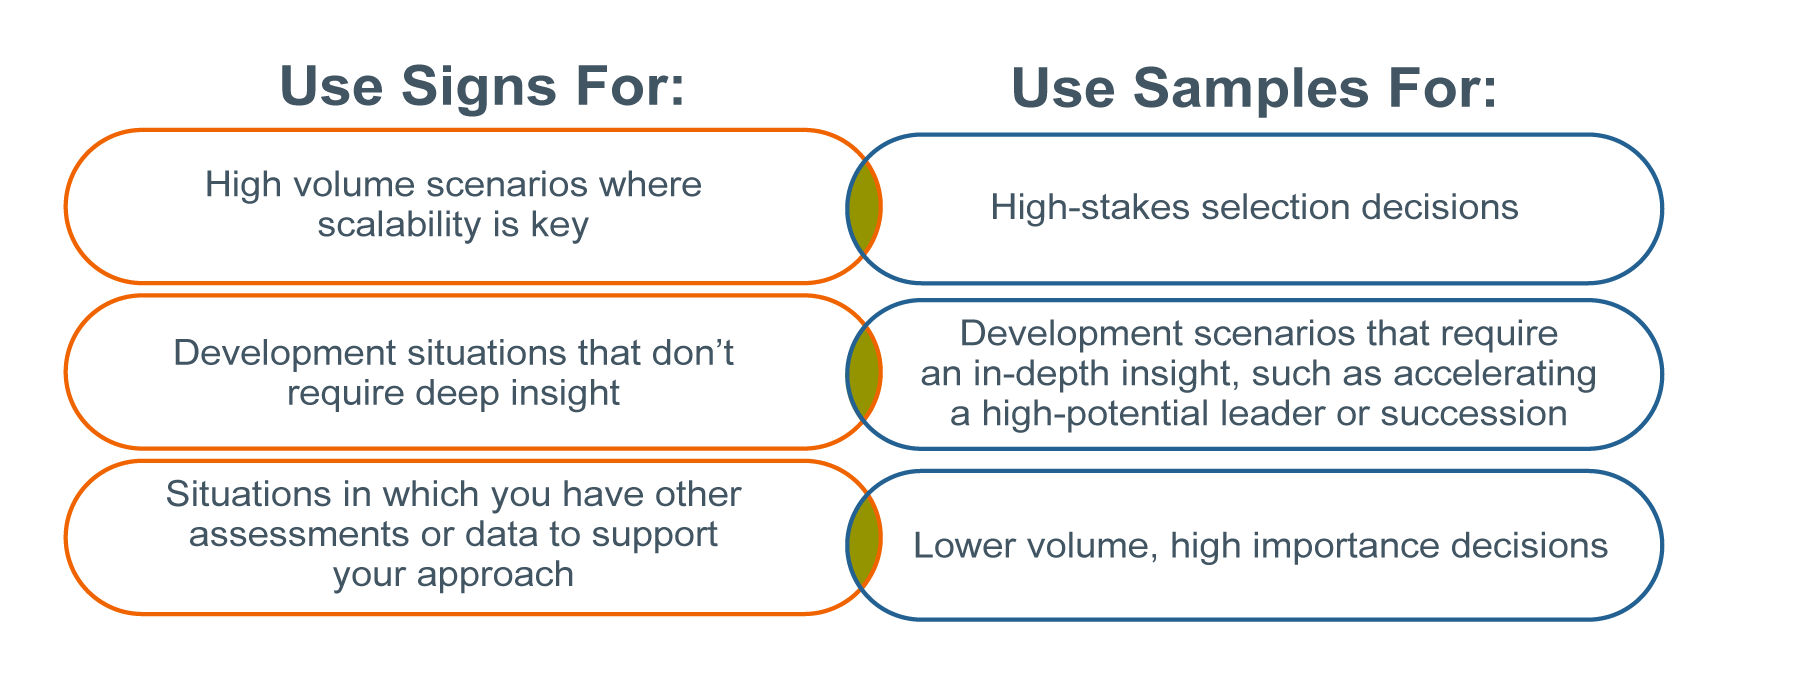 Summary graphic describing the different leadership assessment types. On the left, it says to use signs data for high volume scenarios where scalability is key; development situations that don't require deep insight, and situations in which you have other assessments or data to support your approach. On the right side, it says to use samples for high-stakes selection decisions; development scenarios that require an in-depth insight, such as accelerating a high-potential leader or succession; and lower volume, high importance decisions.